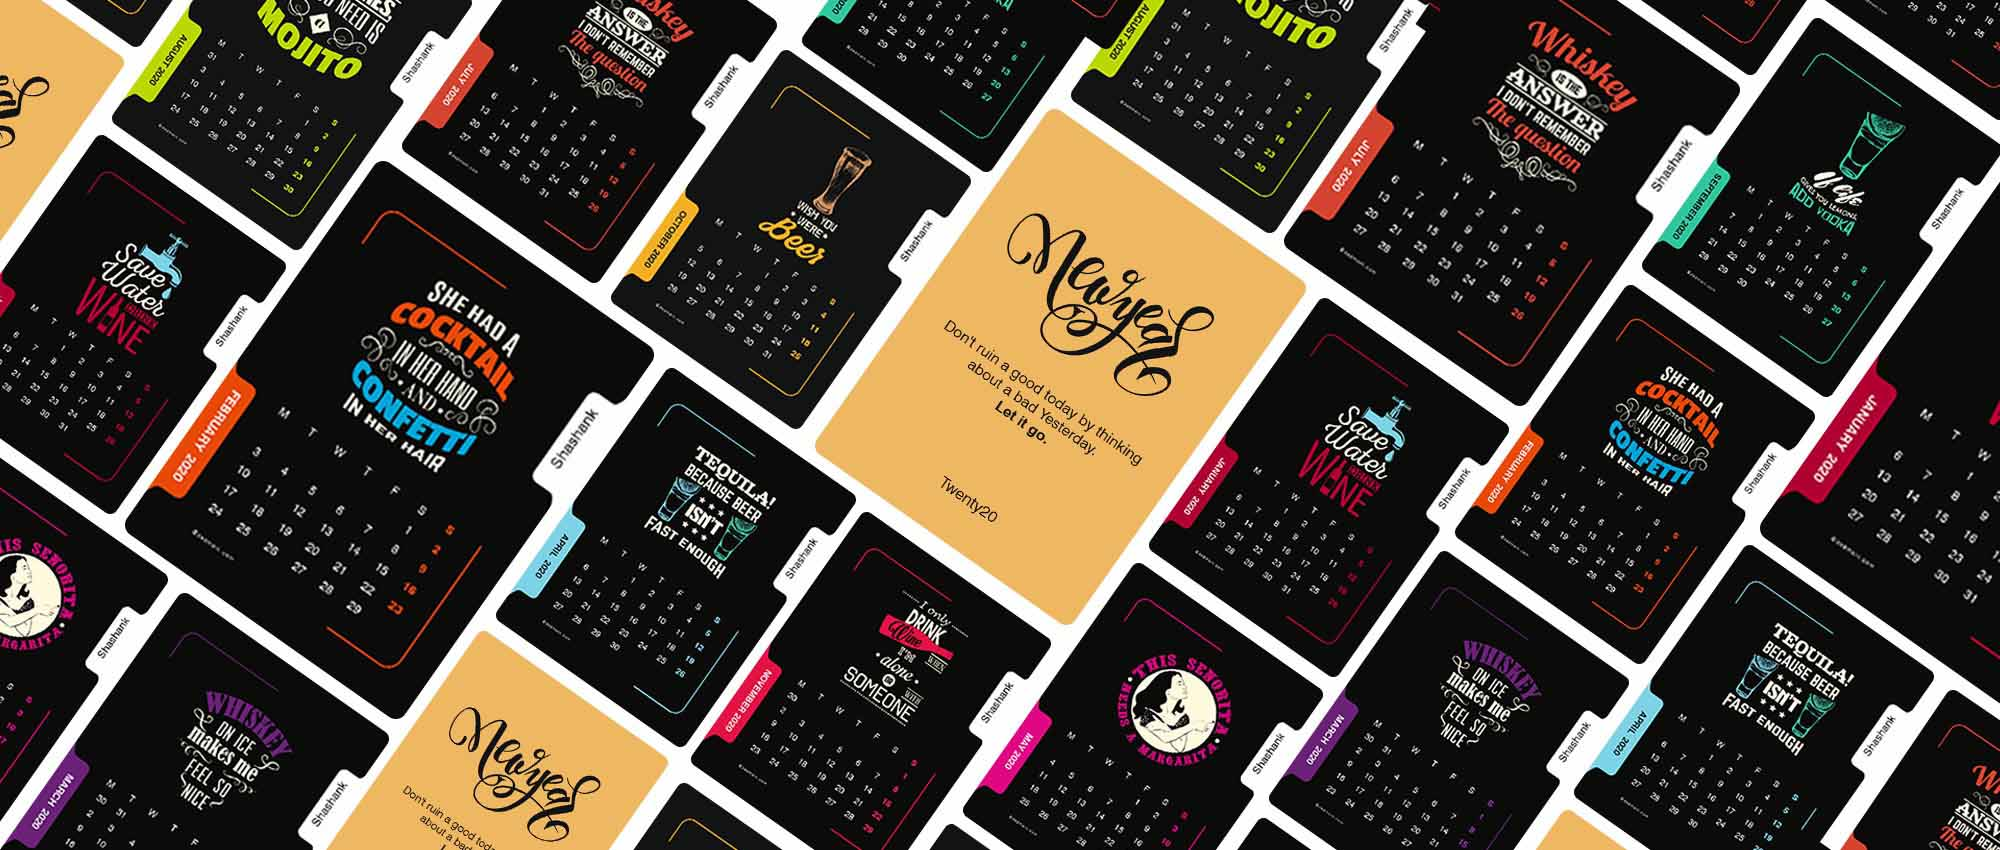 Personalised Desk Calendar 2020<br/> Liquor Lovers